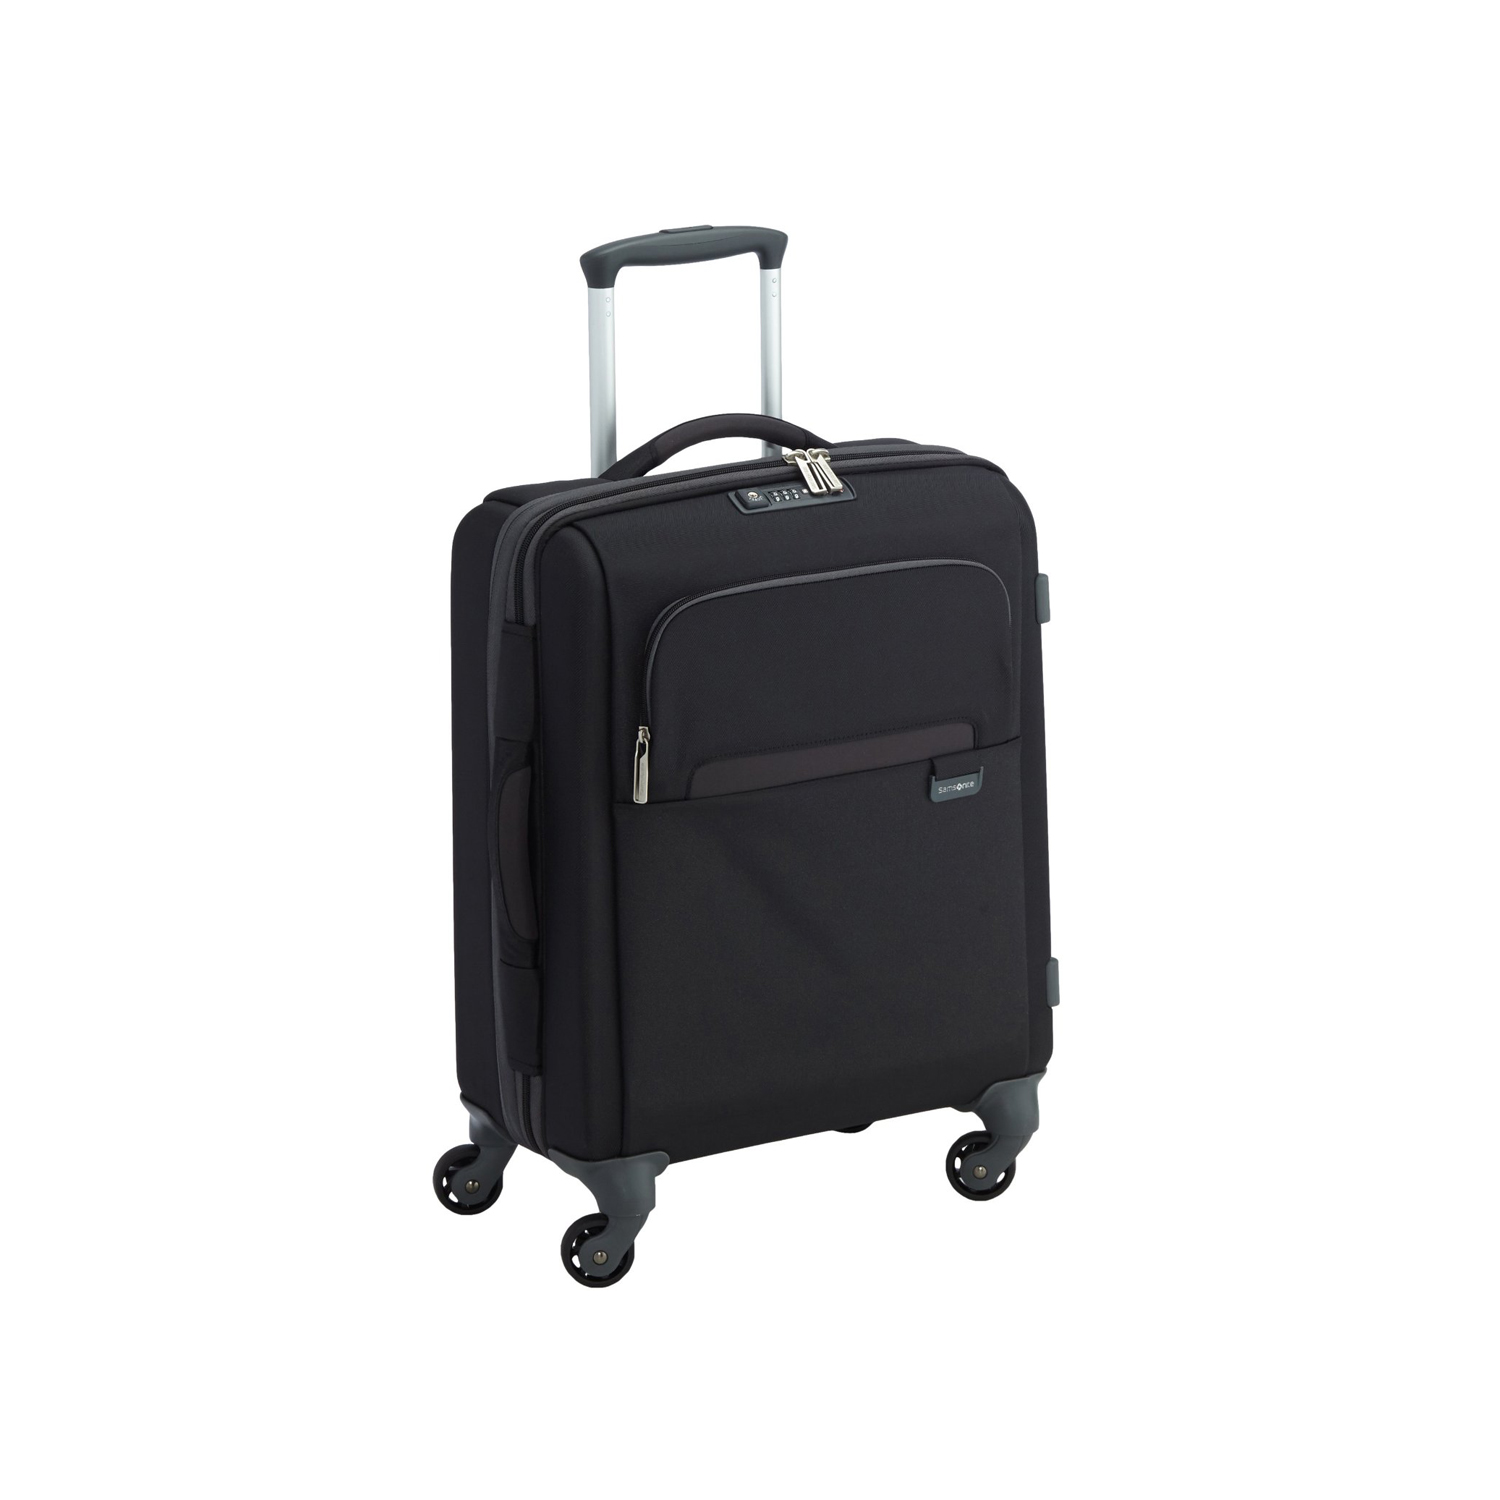 samsonite lumo valise cabine tout pour partir. Black Bedroom Furniture Sets. Home Design Ideas